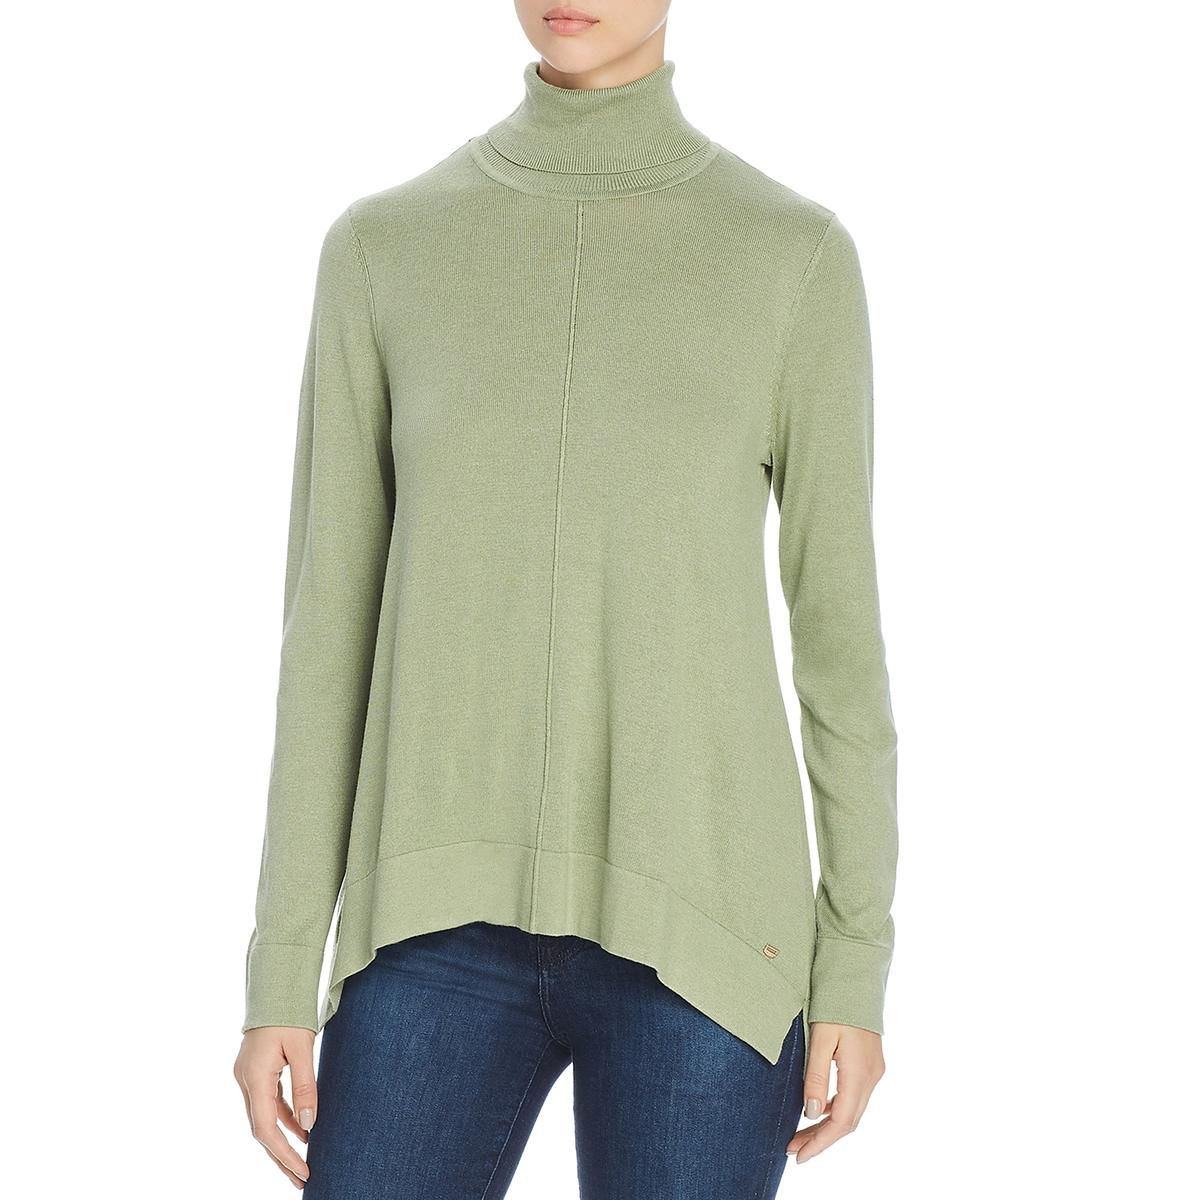 Donna Karan Womens Knit Turtleneck Pullover Top